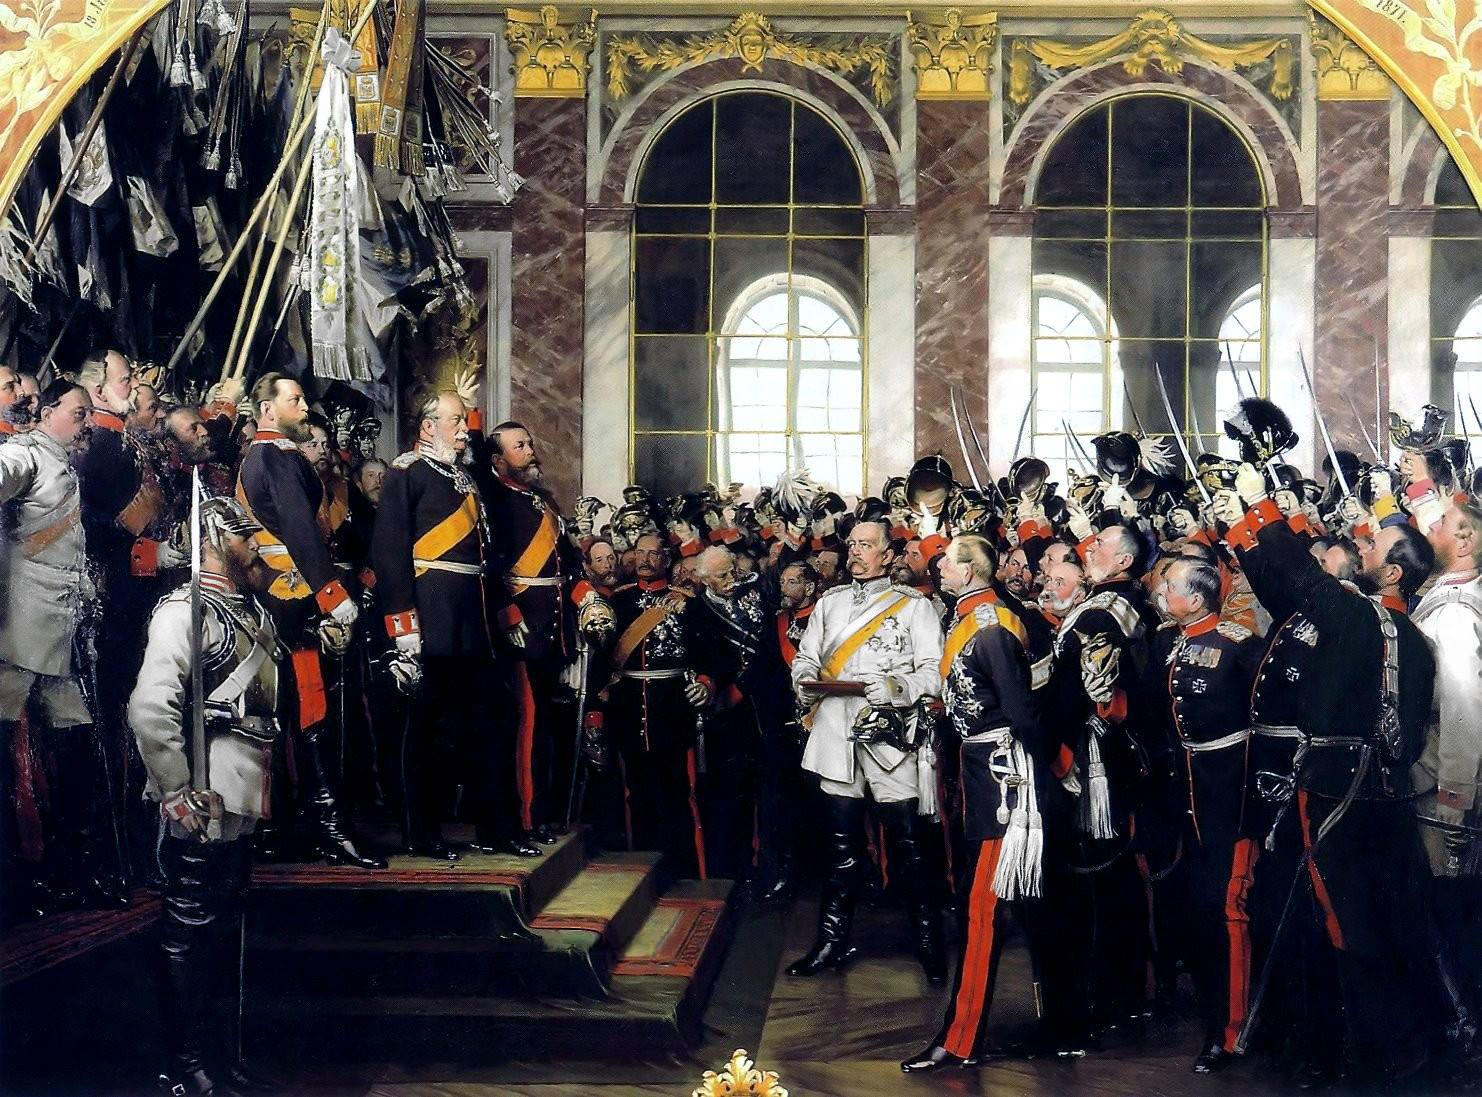 Coronation of Wilhelm I of Prussia | revelationrevealed.online